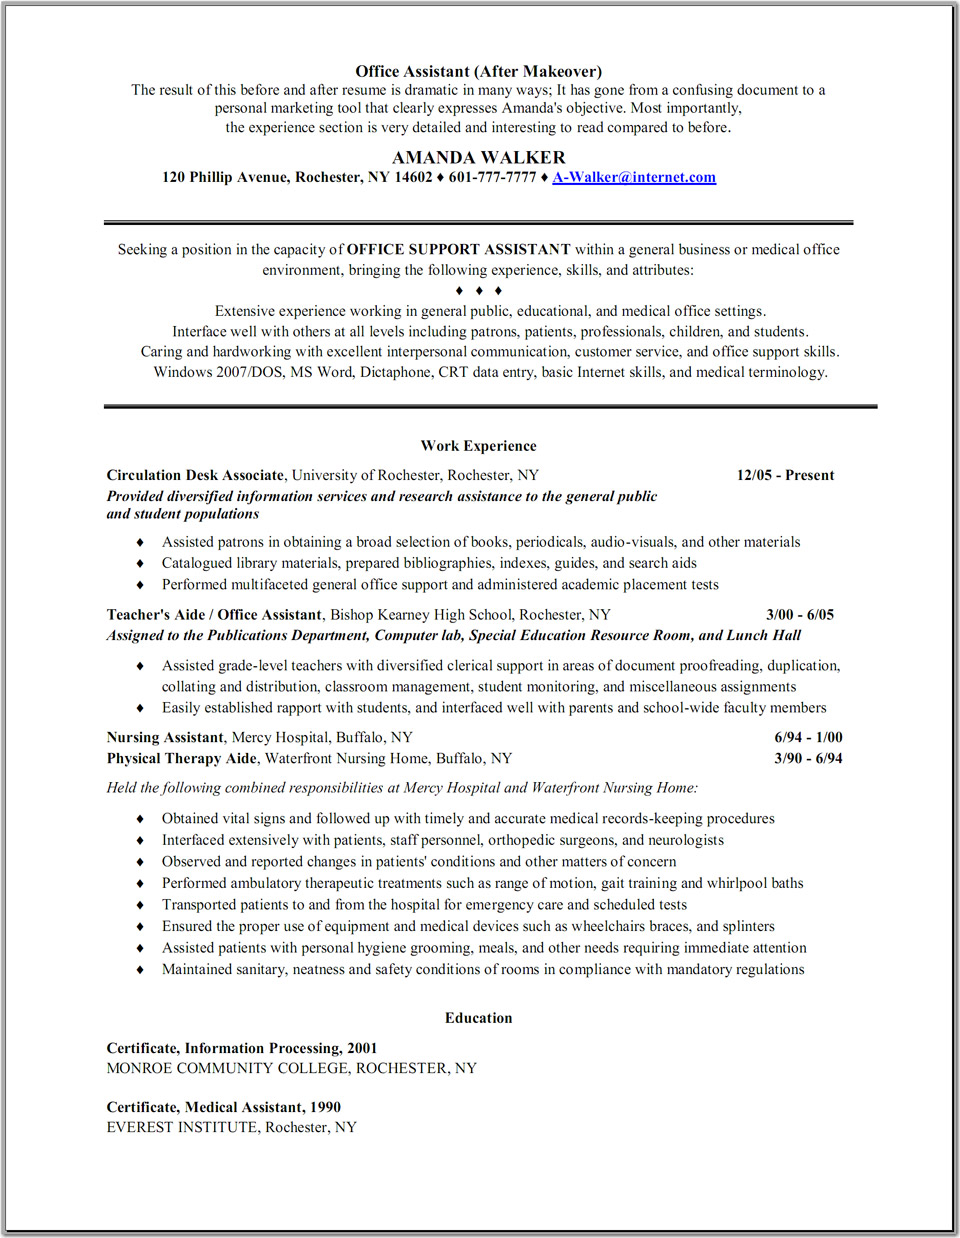 Resume Examples Medical Office Assistant  Affordable Price